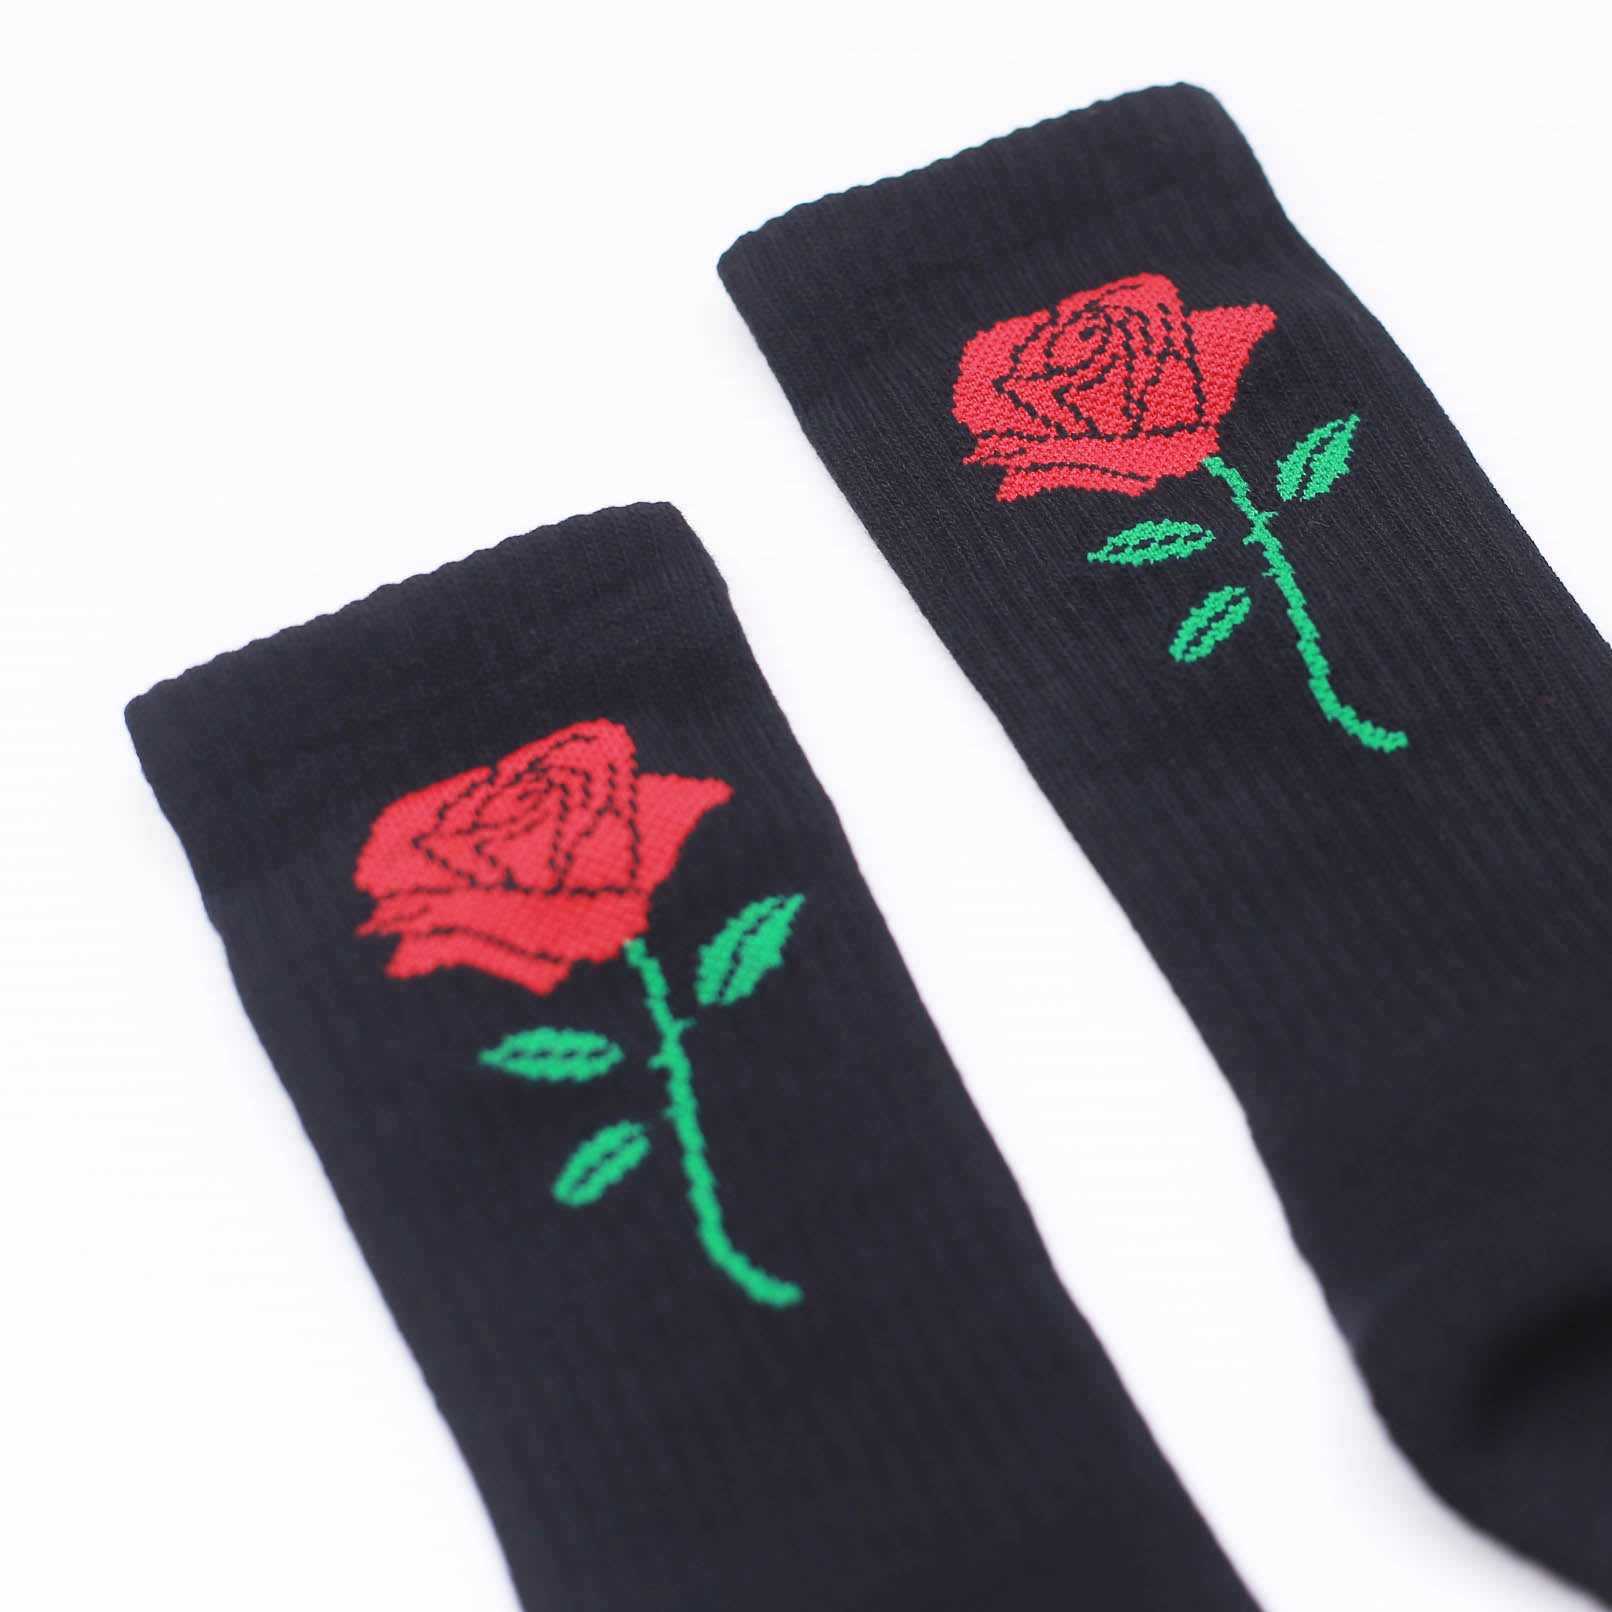 TKSB - Rose Black Socks